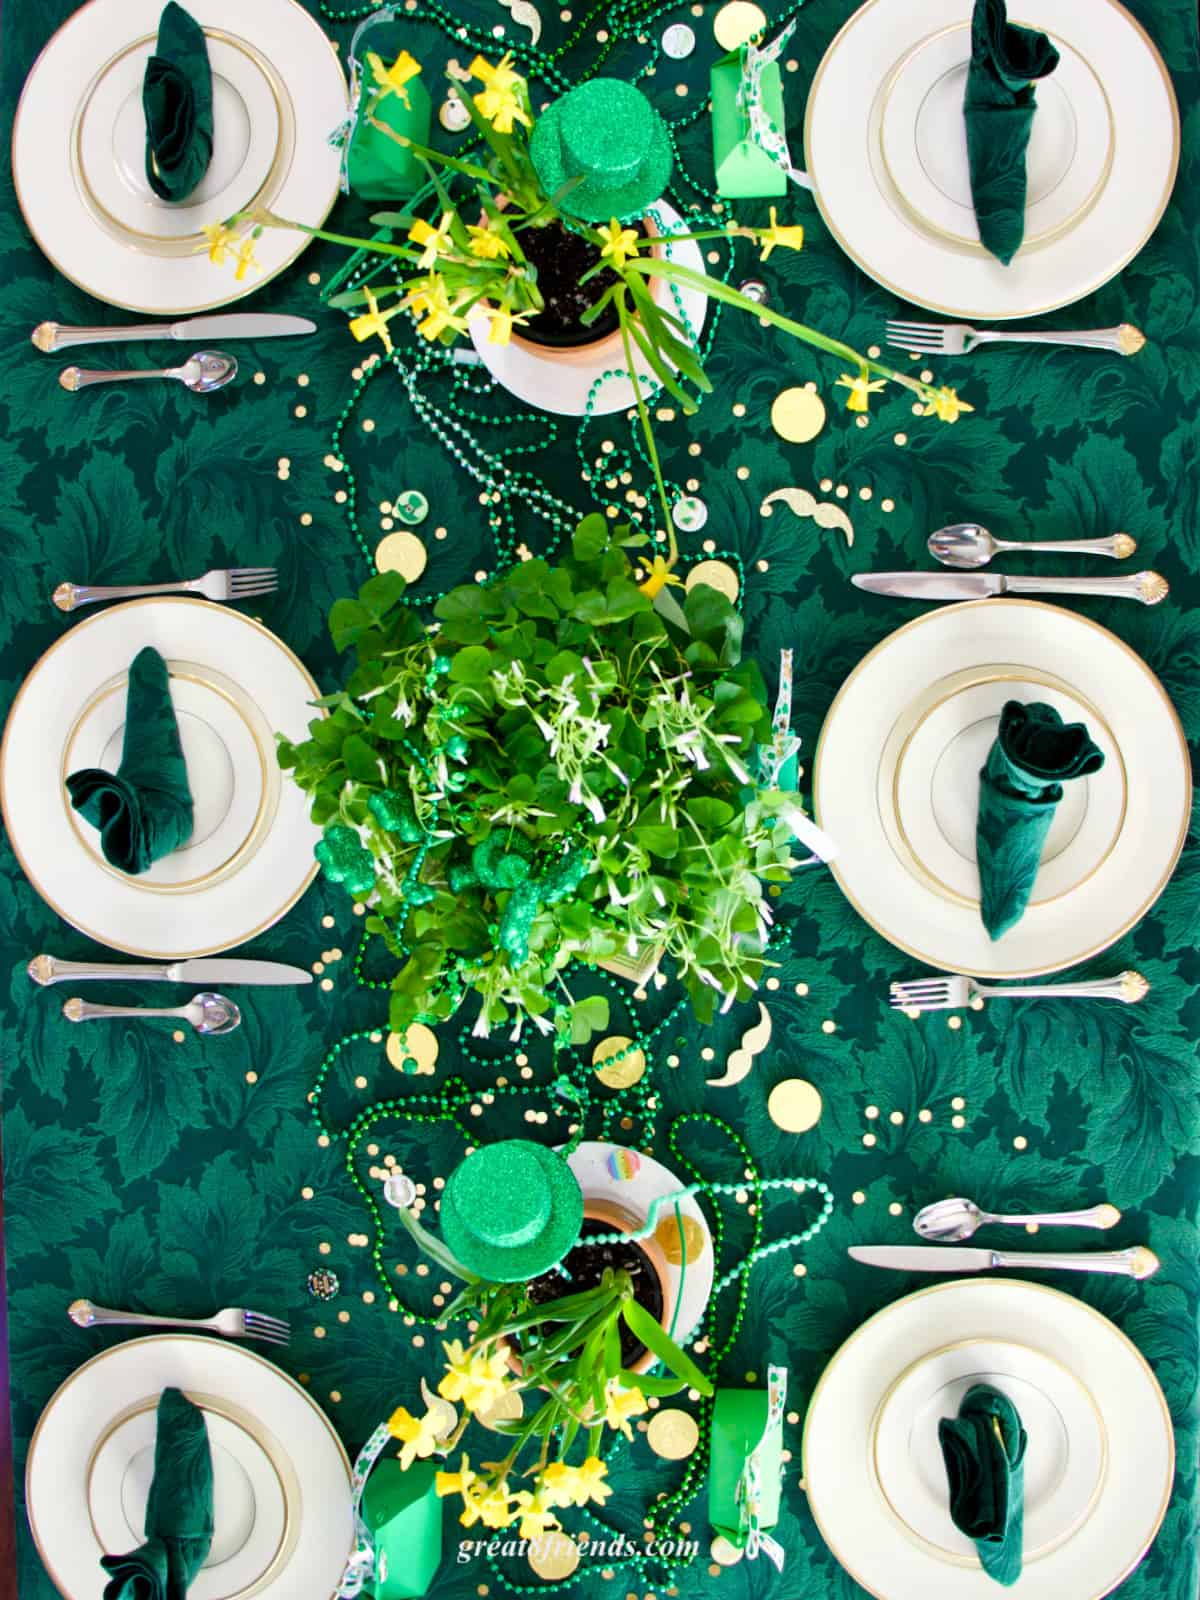 Overhead shot of table set for St. Patrick's Day. With a shamrock centerpieces, gold rimmed china and green tablecloth and napkins.